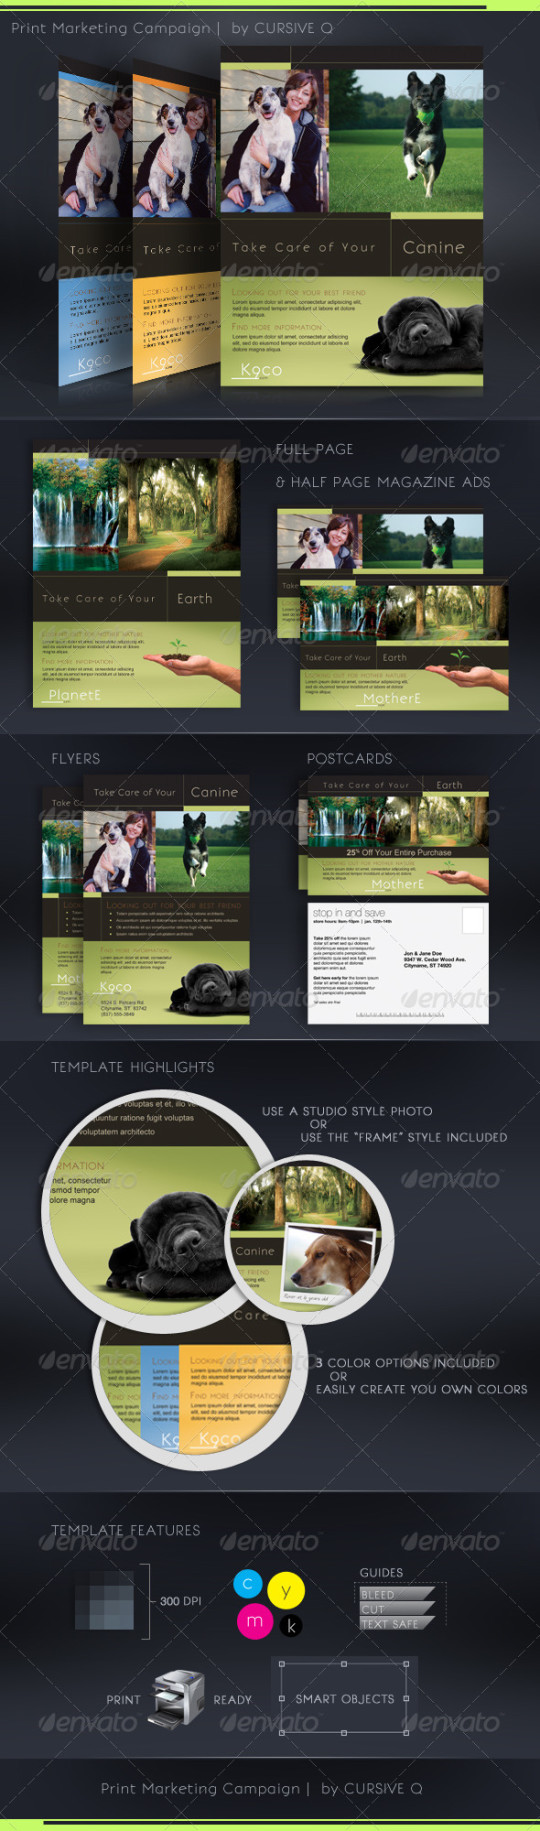 Print Marketing Campaign Template Set